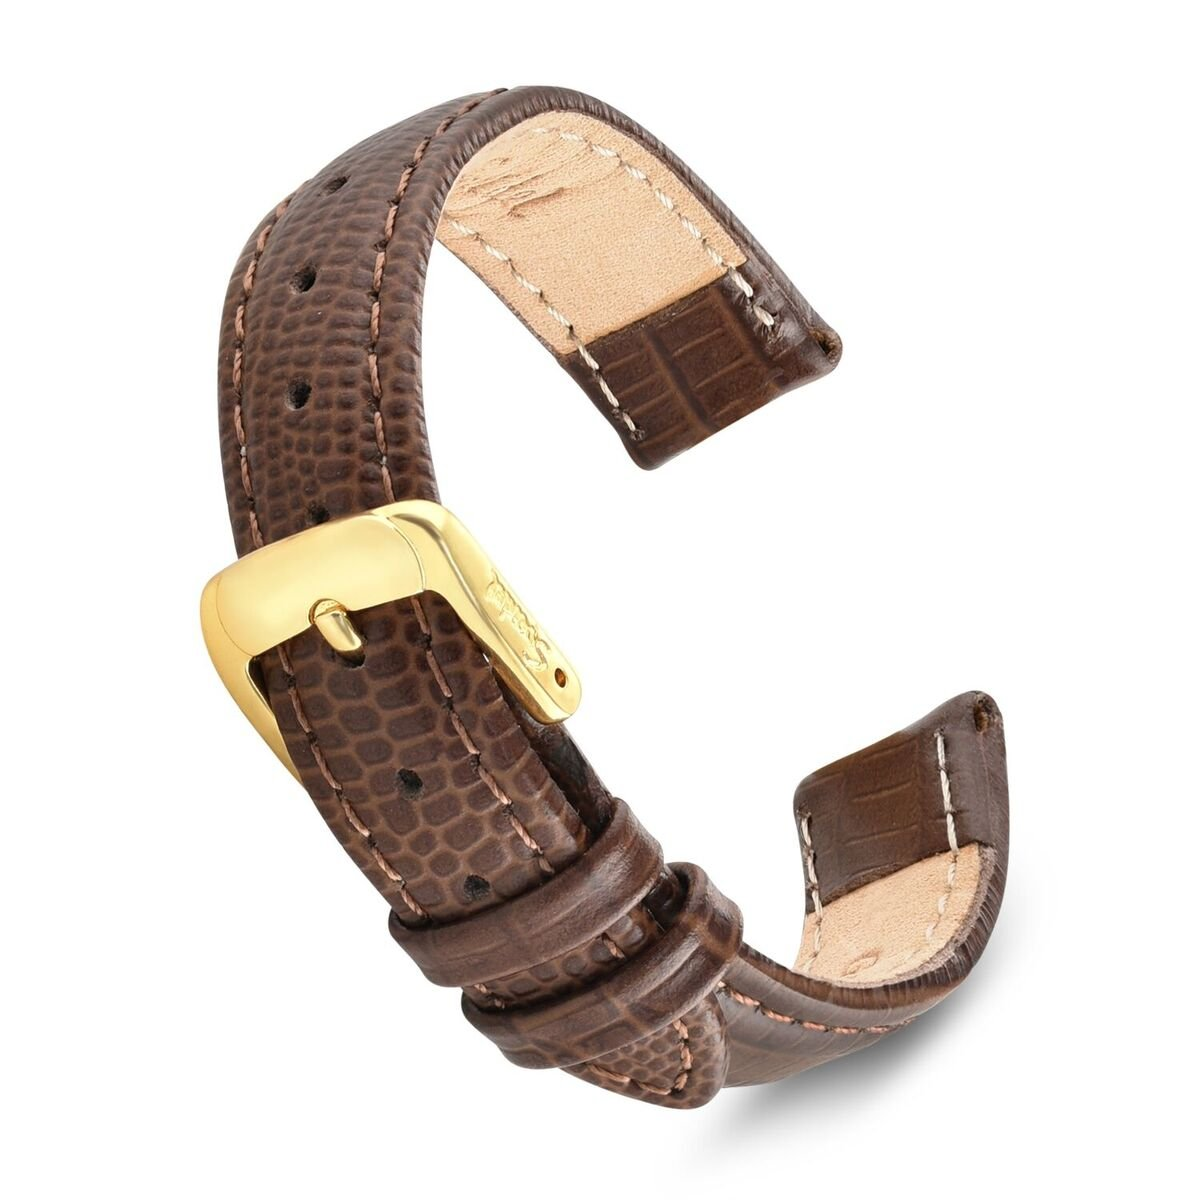 Speidel Genuine Leather Watch Band 14mm-Brown Padded Gator Lizard Replacement Strap with Tone on Tone Stitching, Stainless Steel Metal Buckle Clasp, Watchband Fits Most Watch Brands by Speidel (Image #1)